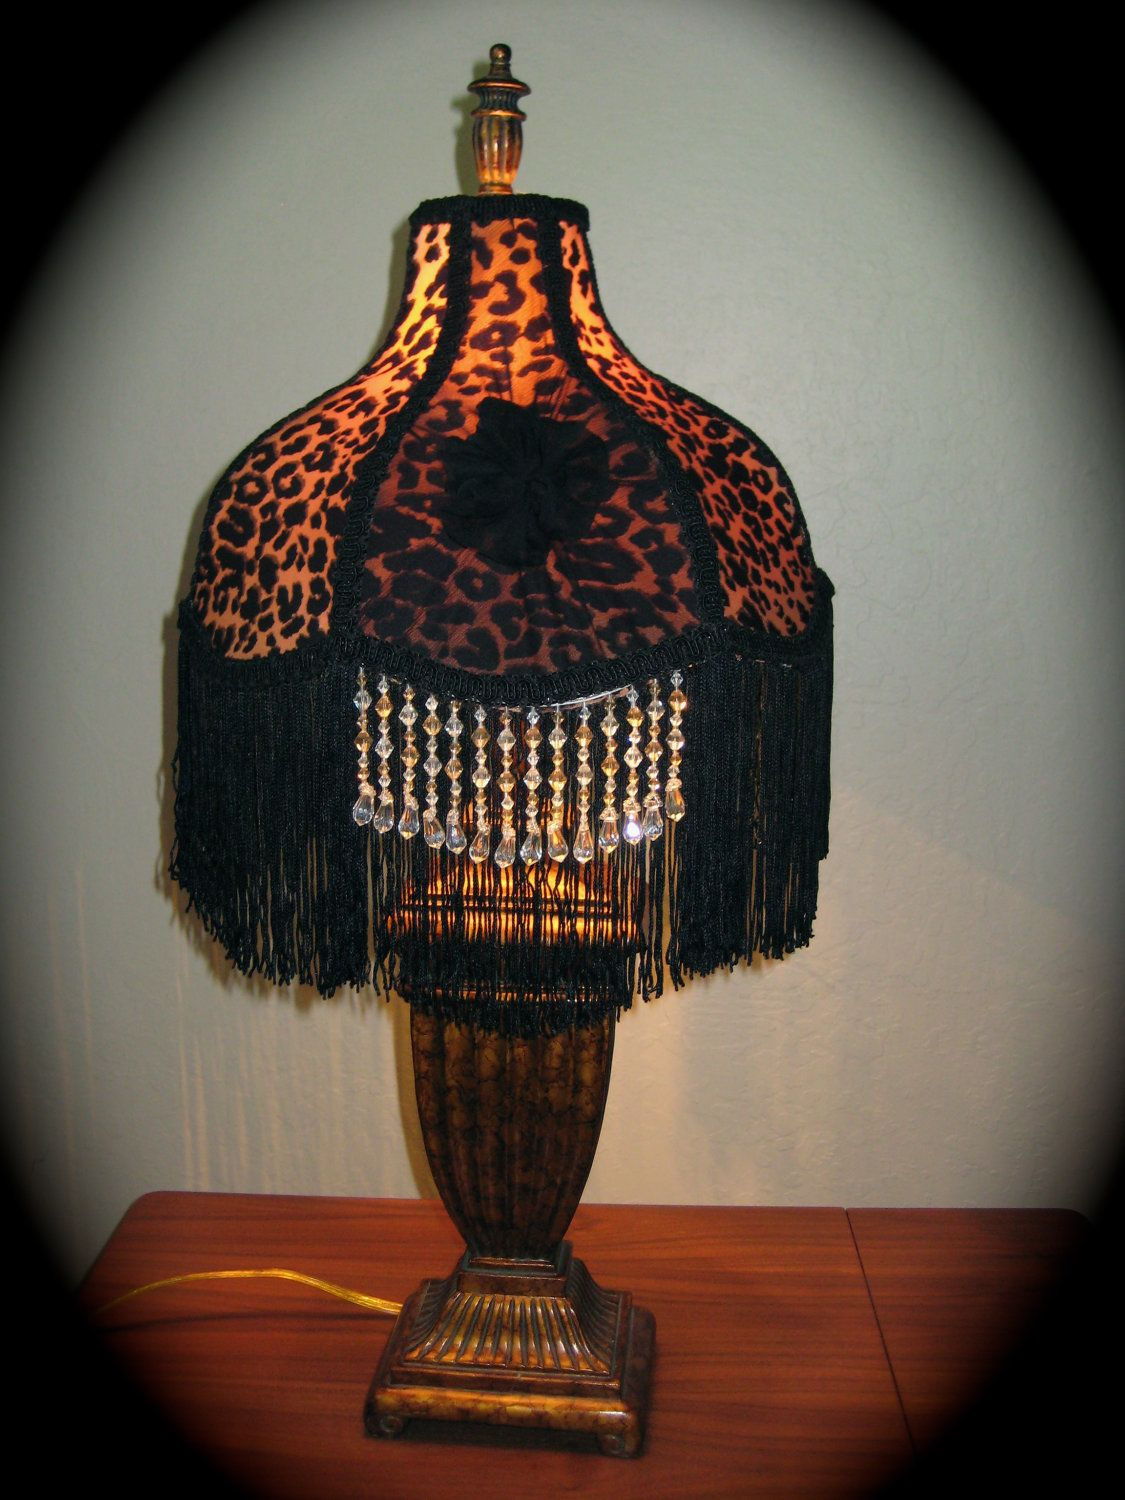 Victorian lamp shade leopard print 8500 via etsy elegant victorian lamp shade leopard print 8500 via etsy aloadofball Images